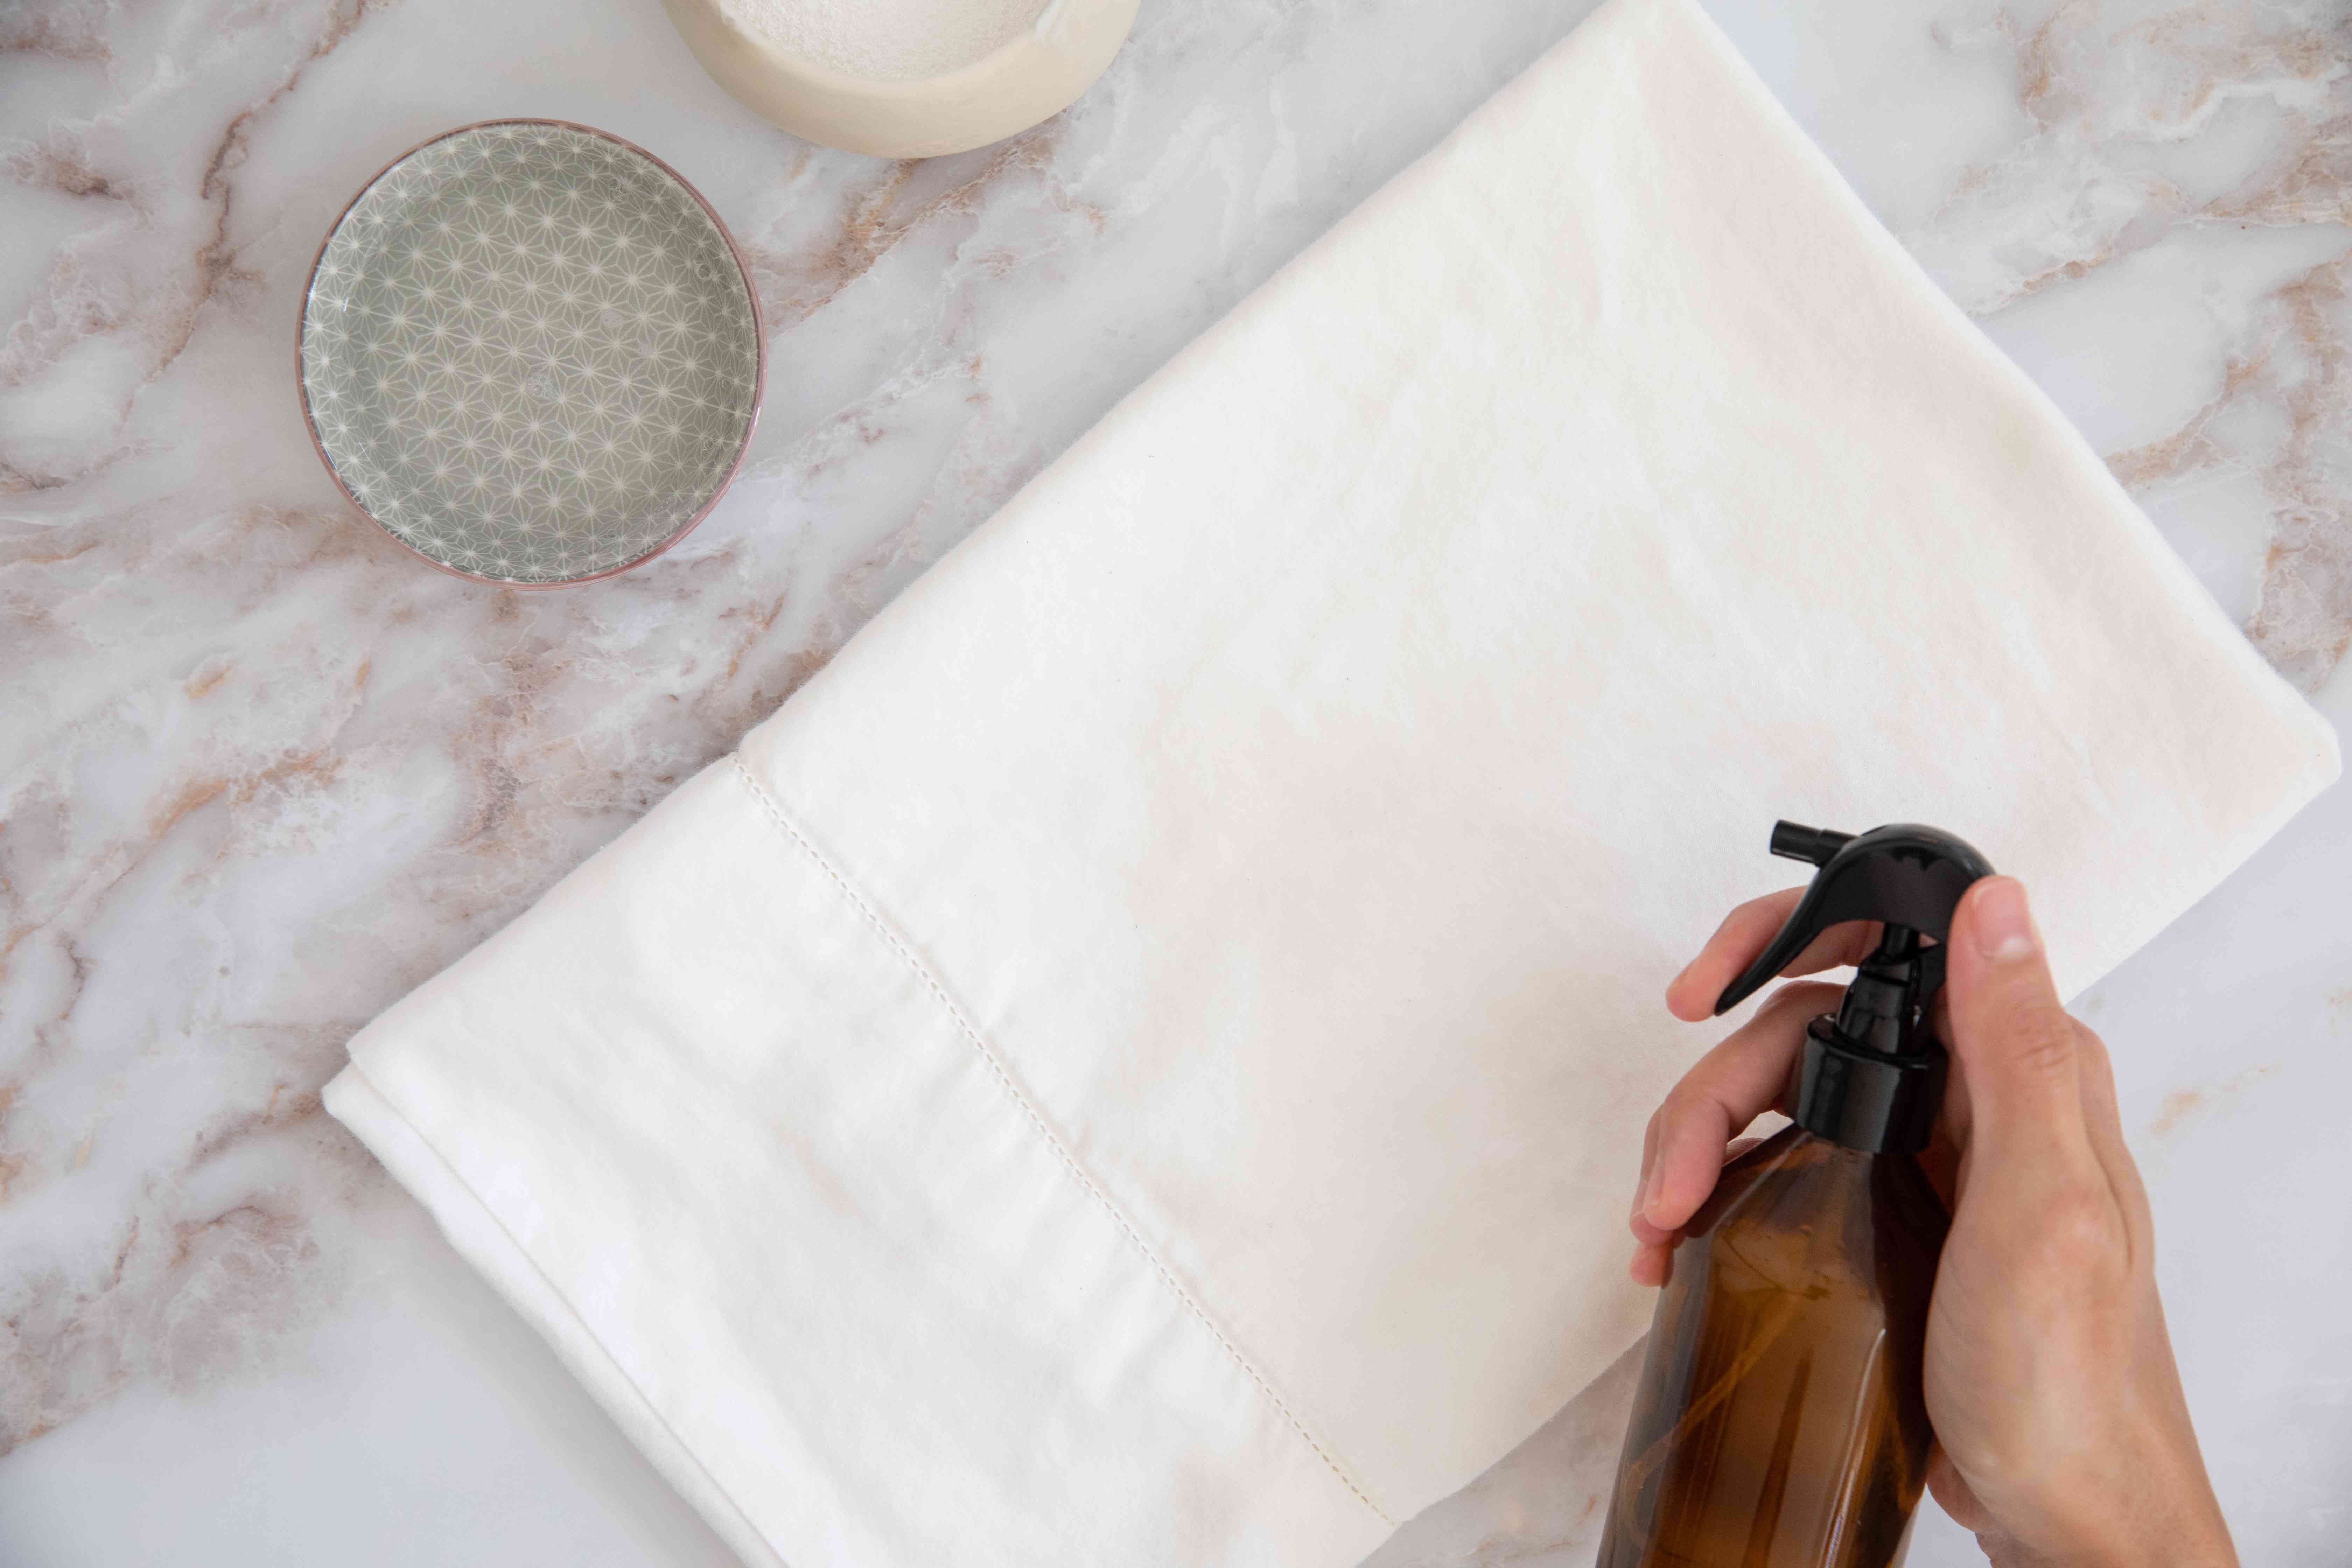 pretreating any stains on bamboo fabric